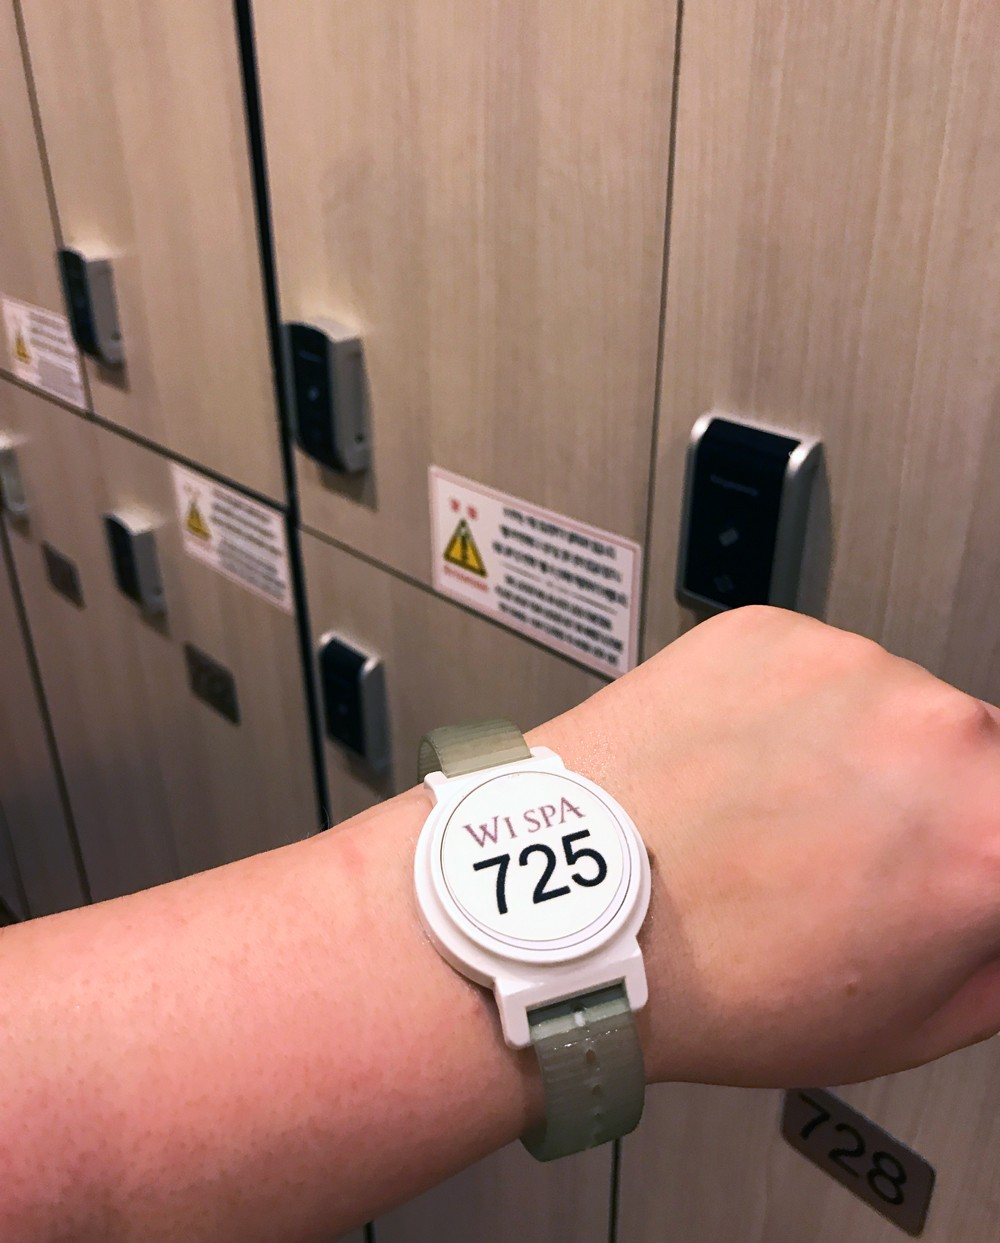 Korean Spa Locker Room - What to expect at a Korean spa in the US by popular Los Angeles travel blogger My Beauty Bunny